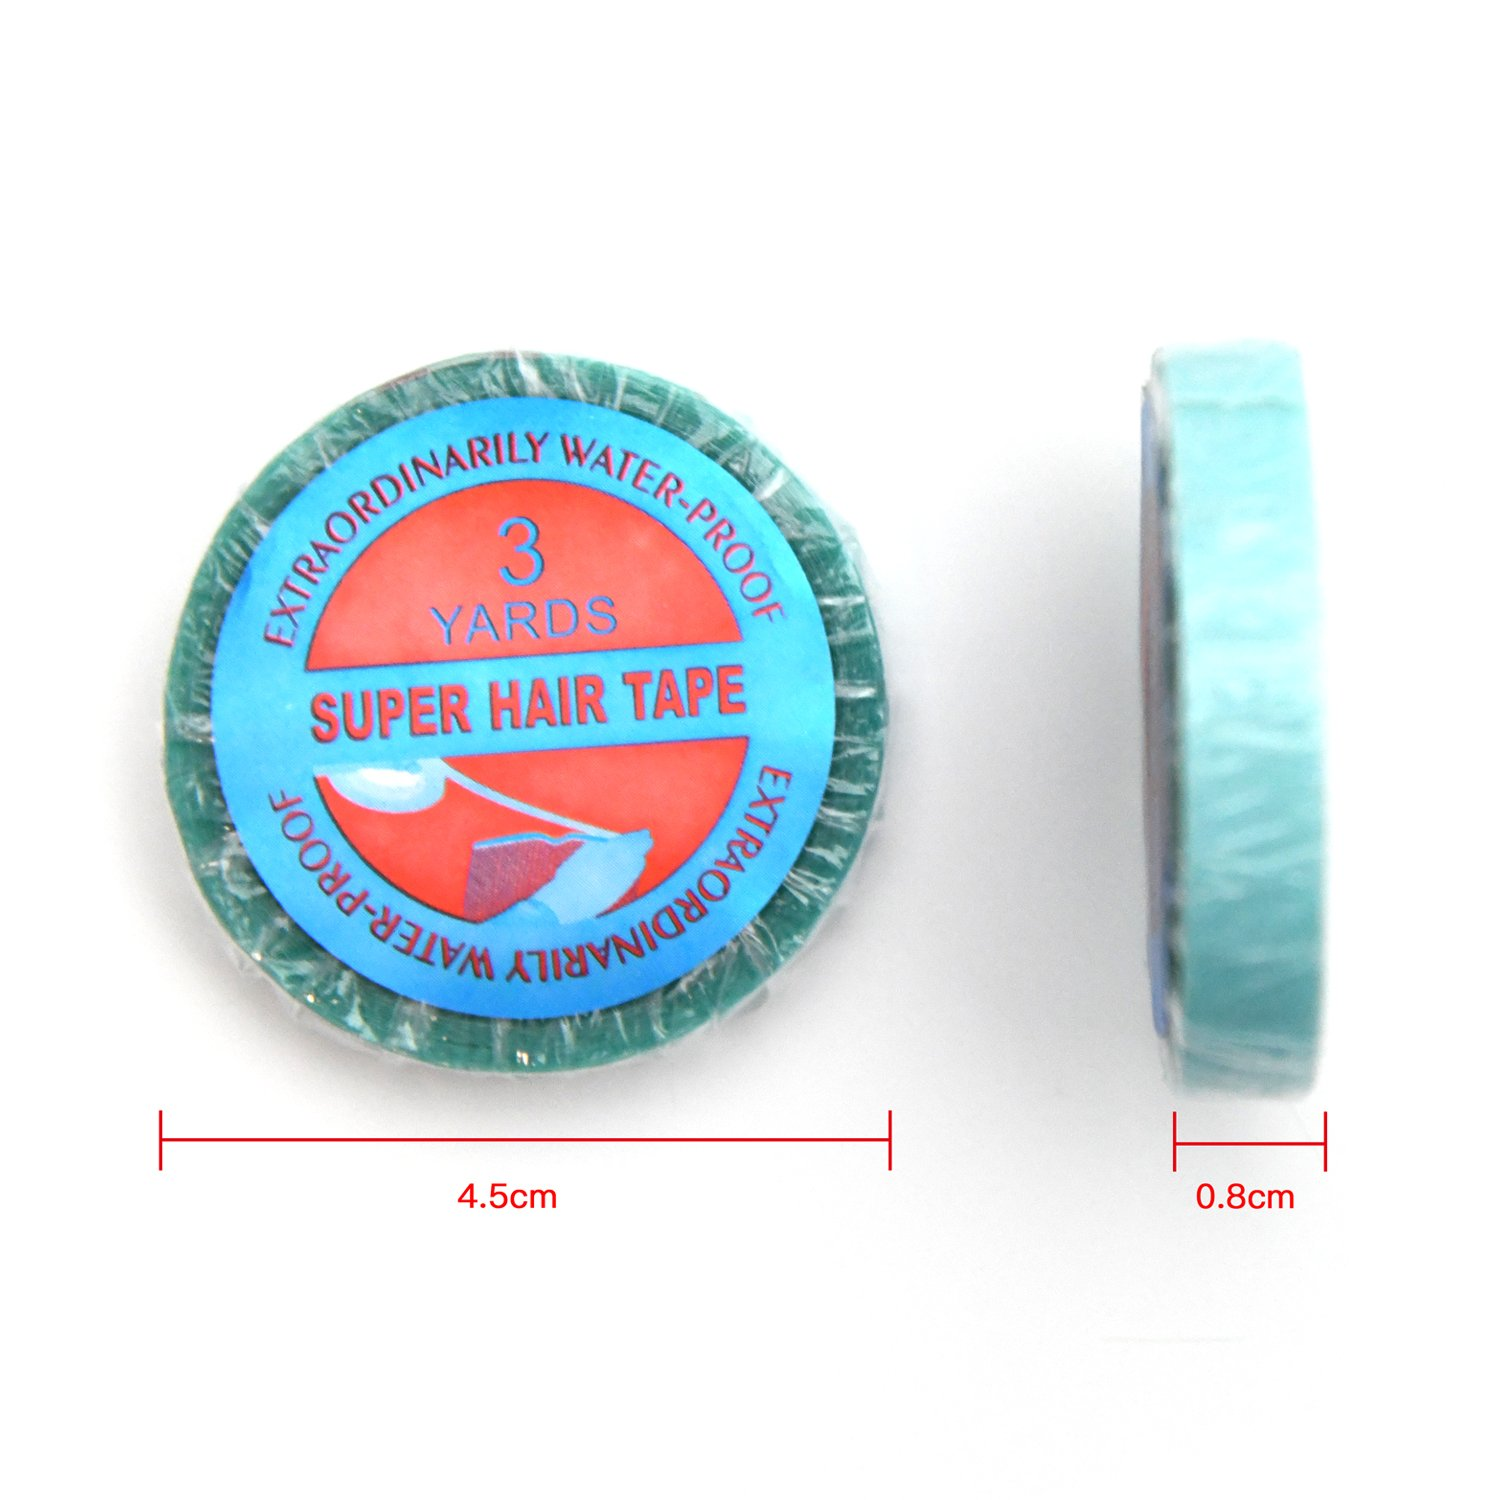 Neitsi 1 Roll 0.8cm*3Yards Blue Super Hair Tape for Hair Extensions (0.8cm*3Yards) LTD